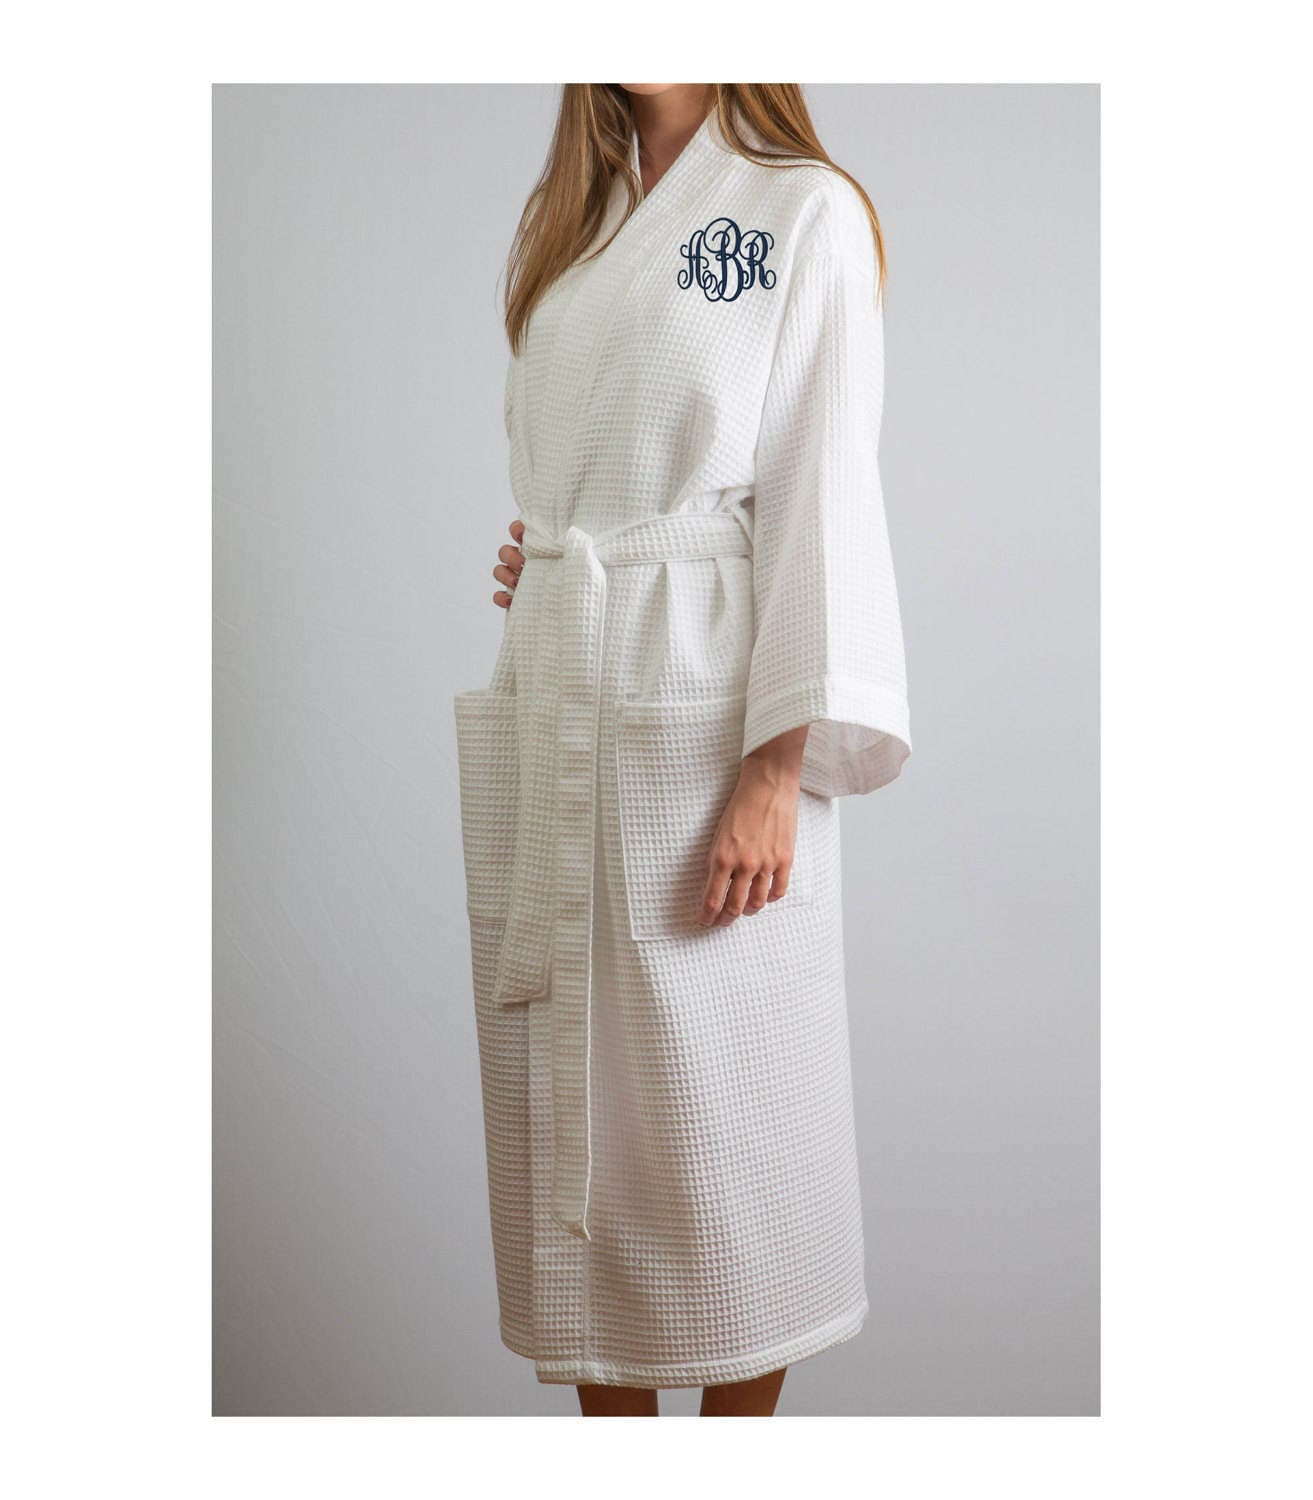 Customizable monogrammed spa robe from Monogram Works.